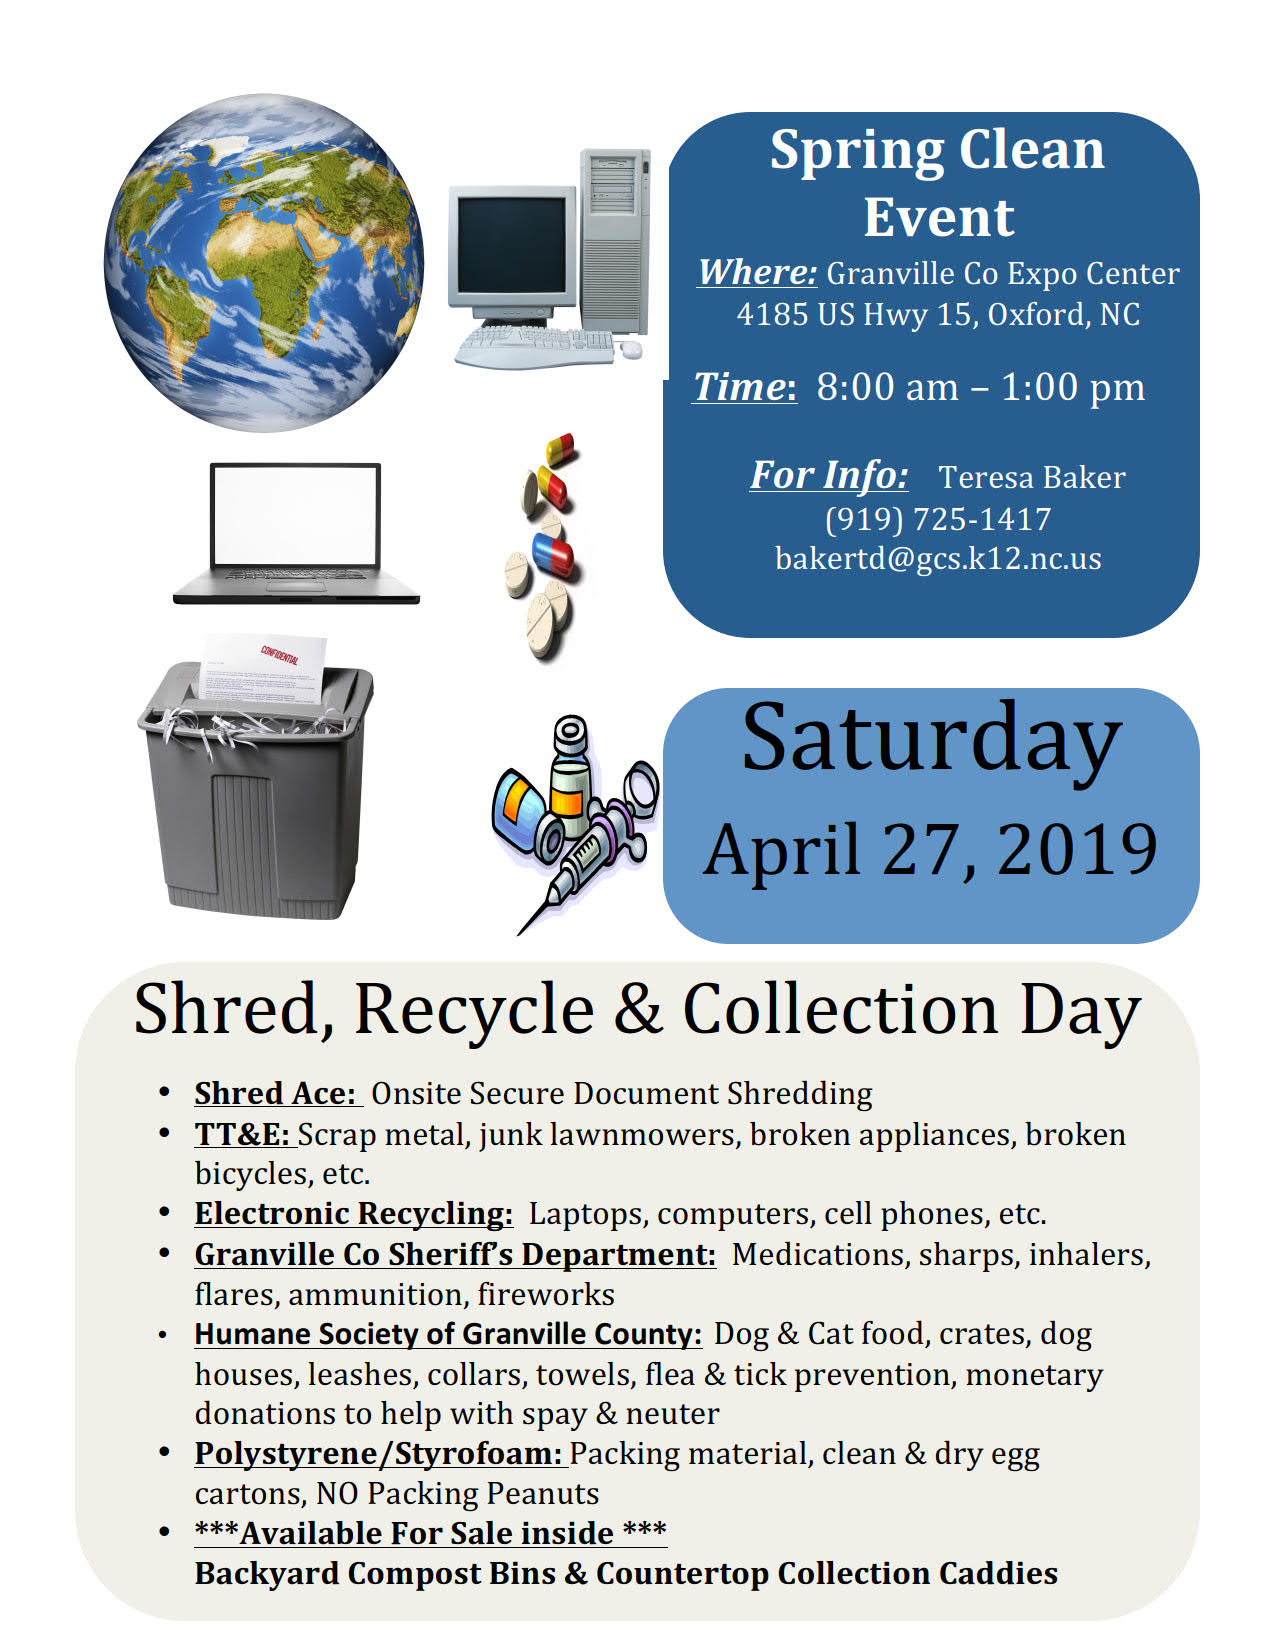 Shred & Recycle Event | Event List View (For Meeting) | City